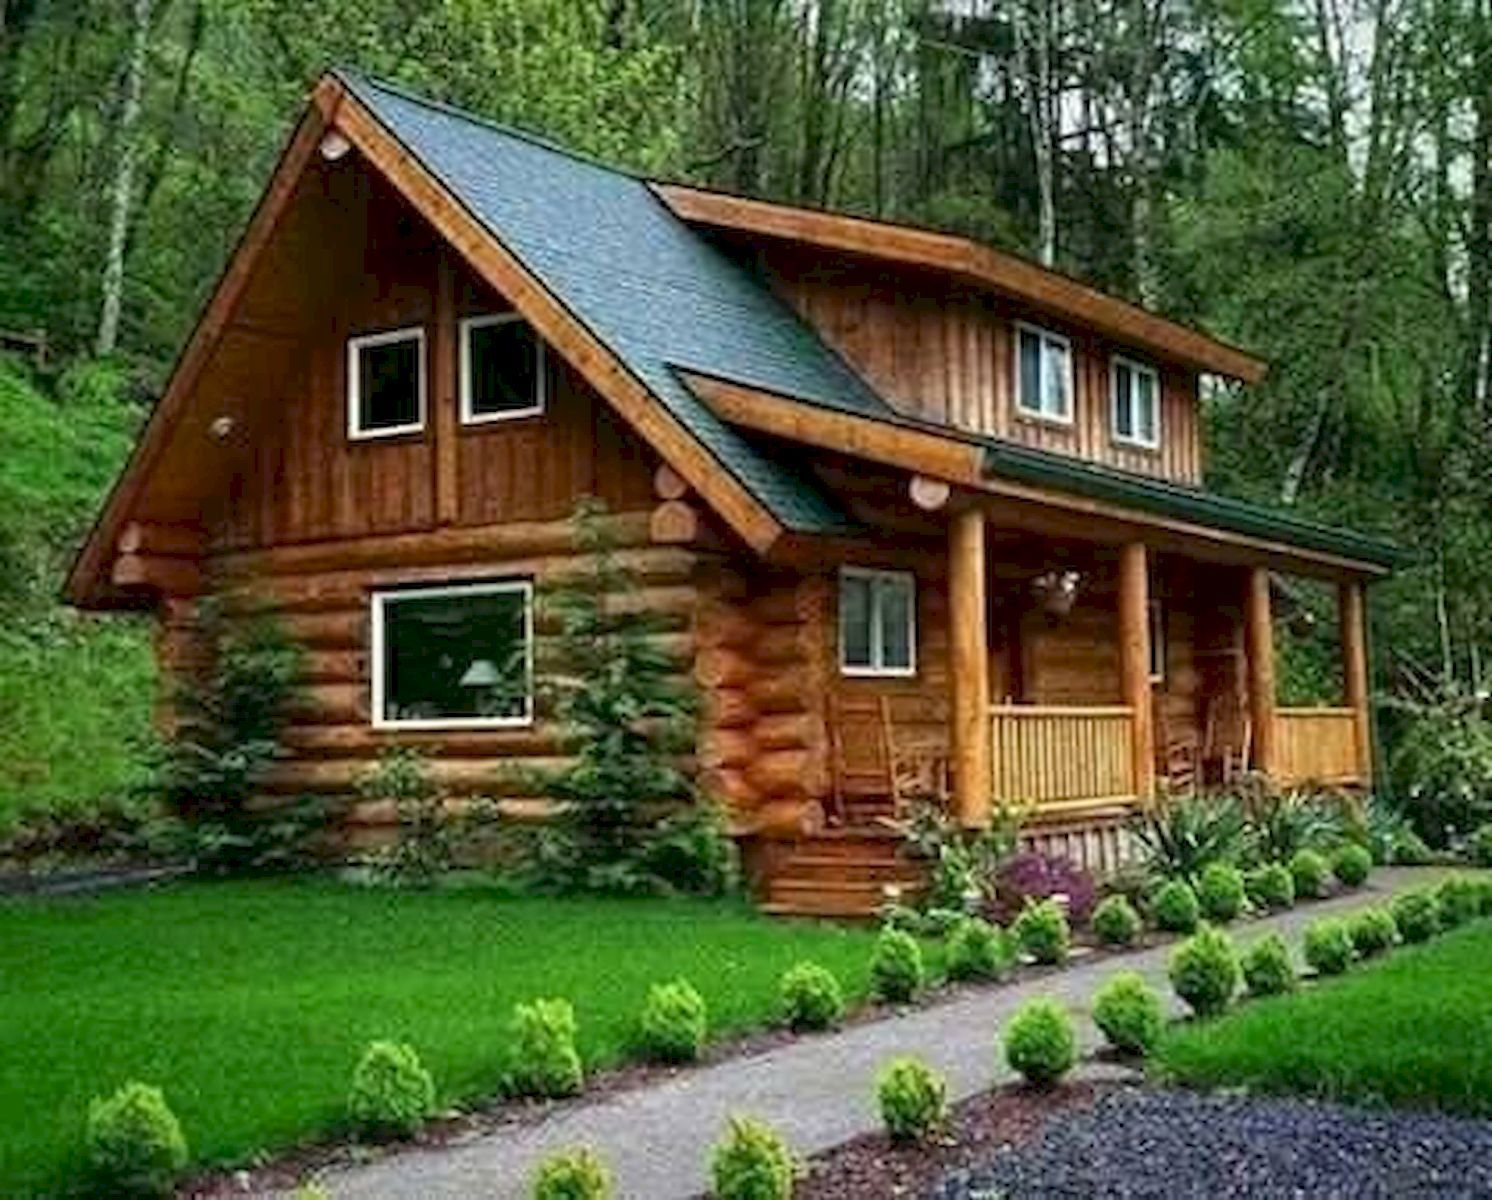 Amazing Tips To Build Your Dream Log Cabin In The Mountains Or Next To A River A Peaceful Environment To Get A Cabins And Cottages Cabin Homes Log Cabin Homes